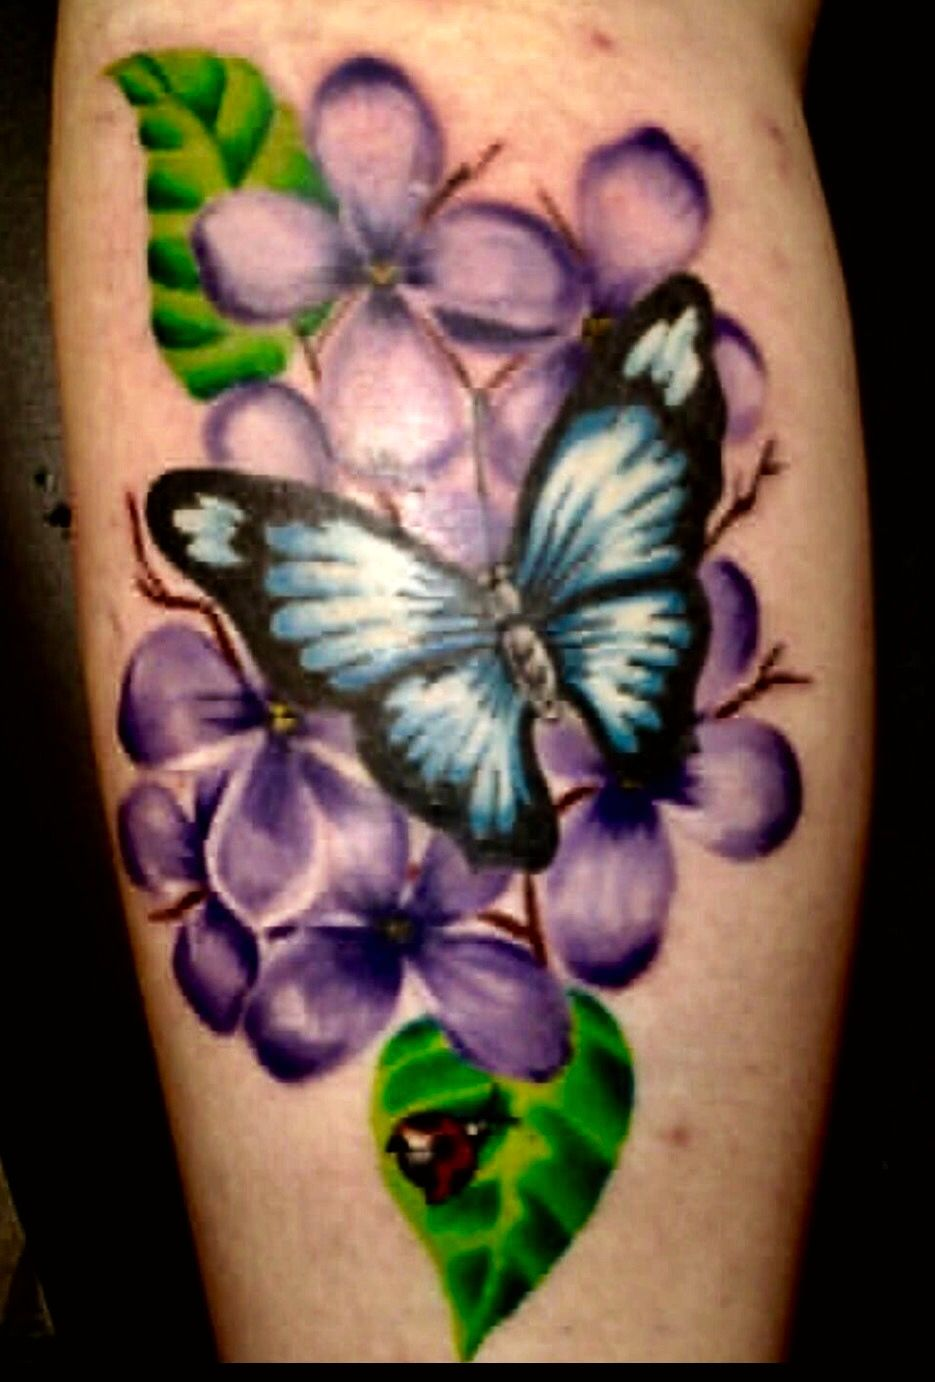 Lilacs Butterfly Tattoo Lilac Tattoo Butterfly Tattoo Tattoos For Women Flowers